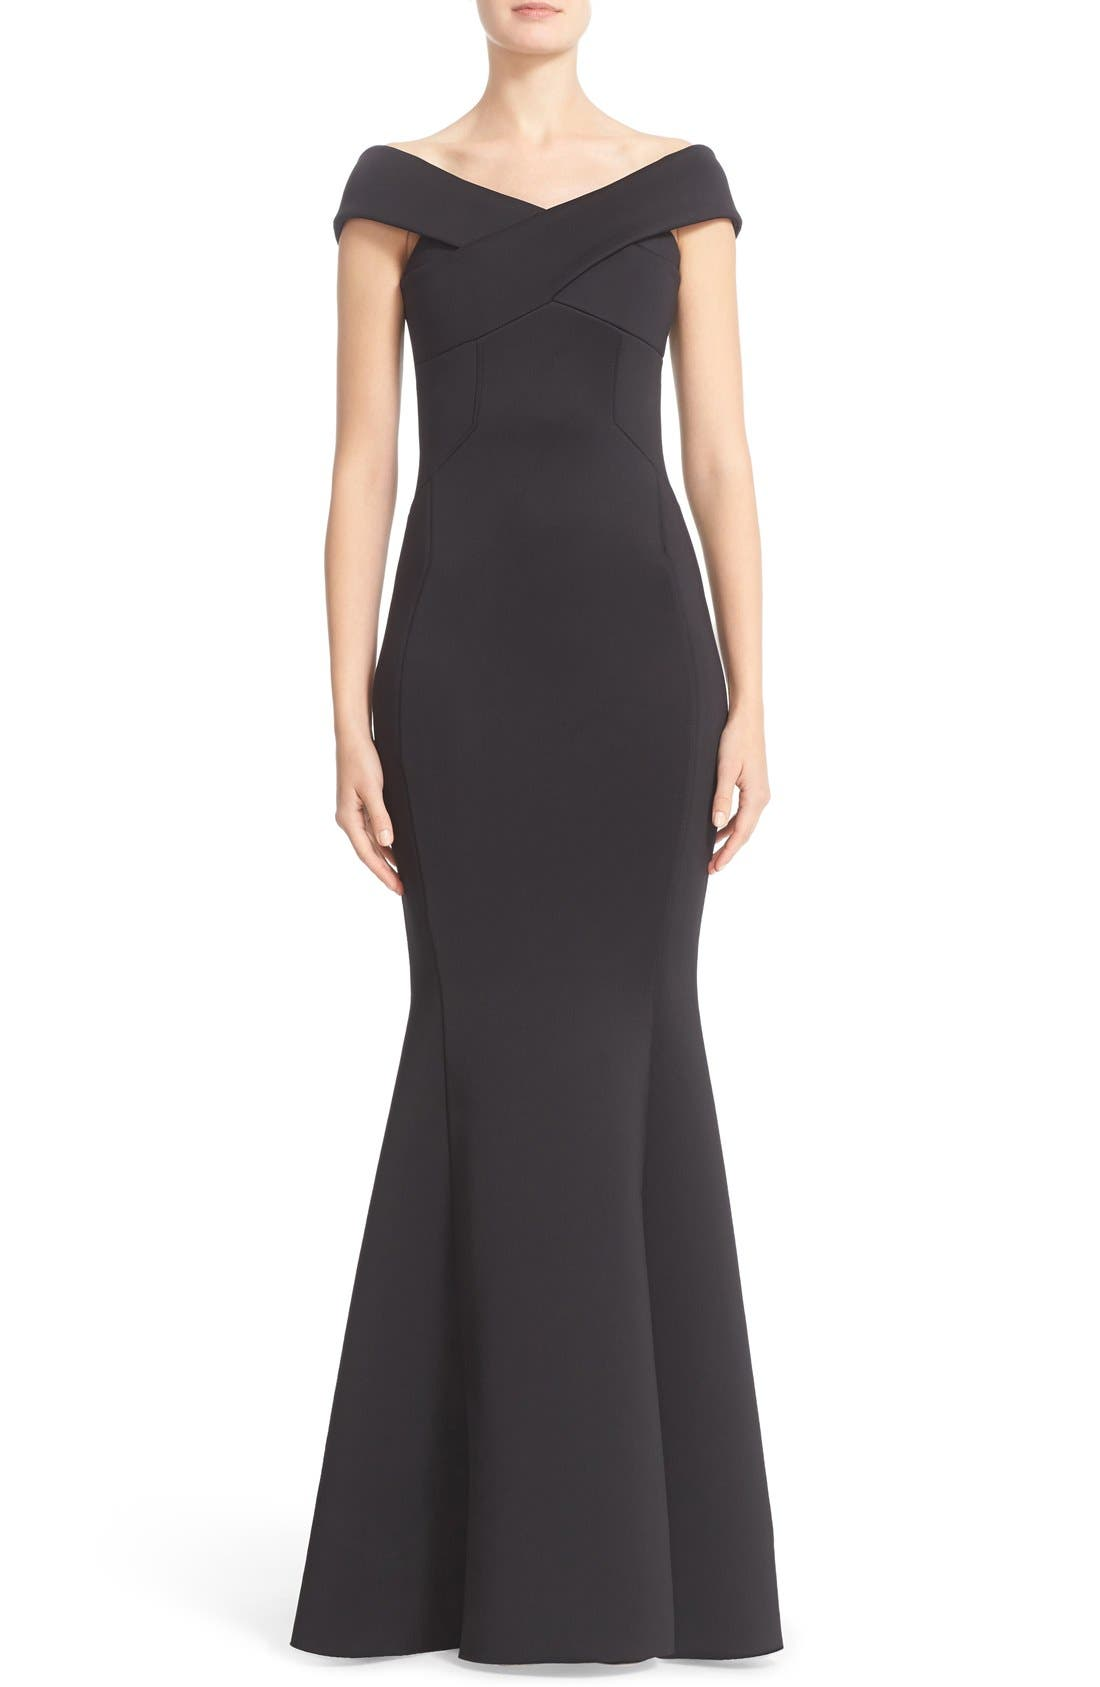 Rachel Gilbert Off the Shoulder Neoprene Mermaid Gown